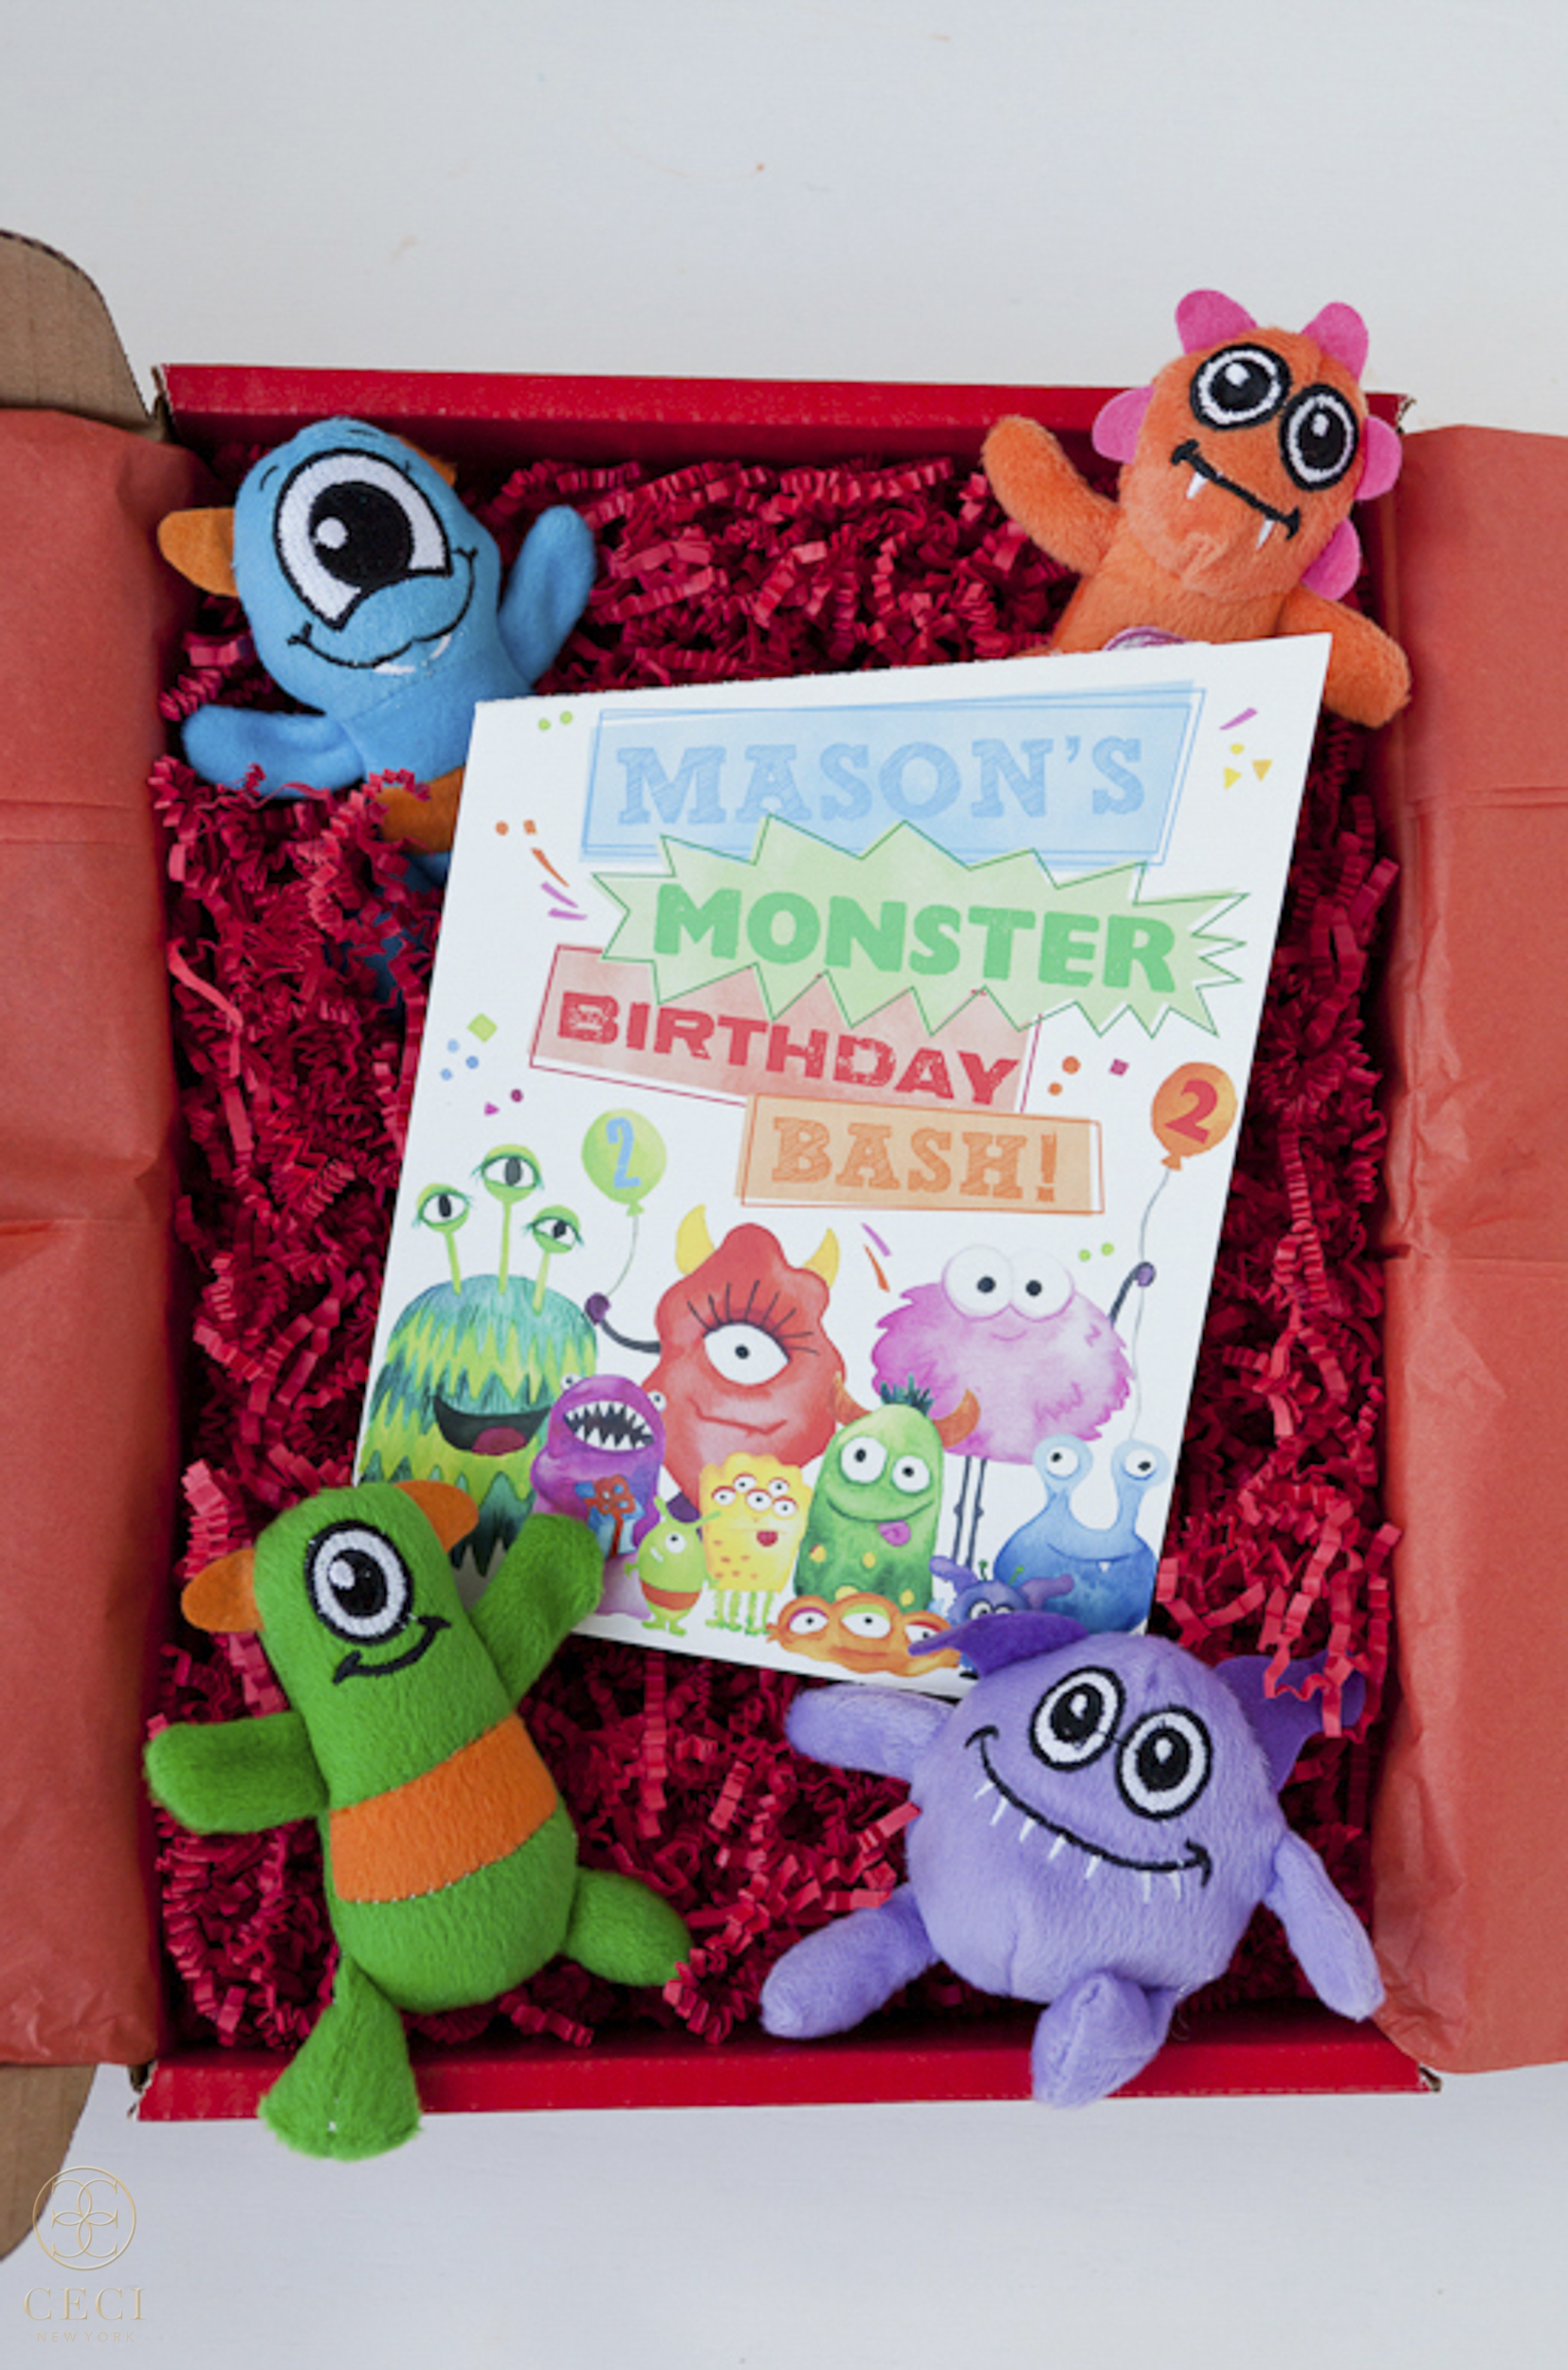 ceci-johnson-mason-birthday-party-2-second-new-york-city-monster-party-theme-kids-cute-creative-characters-3.jpg